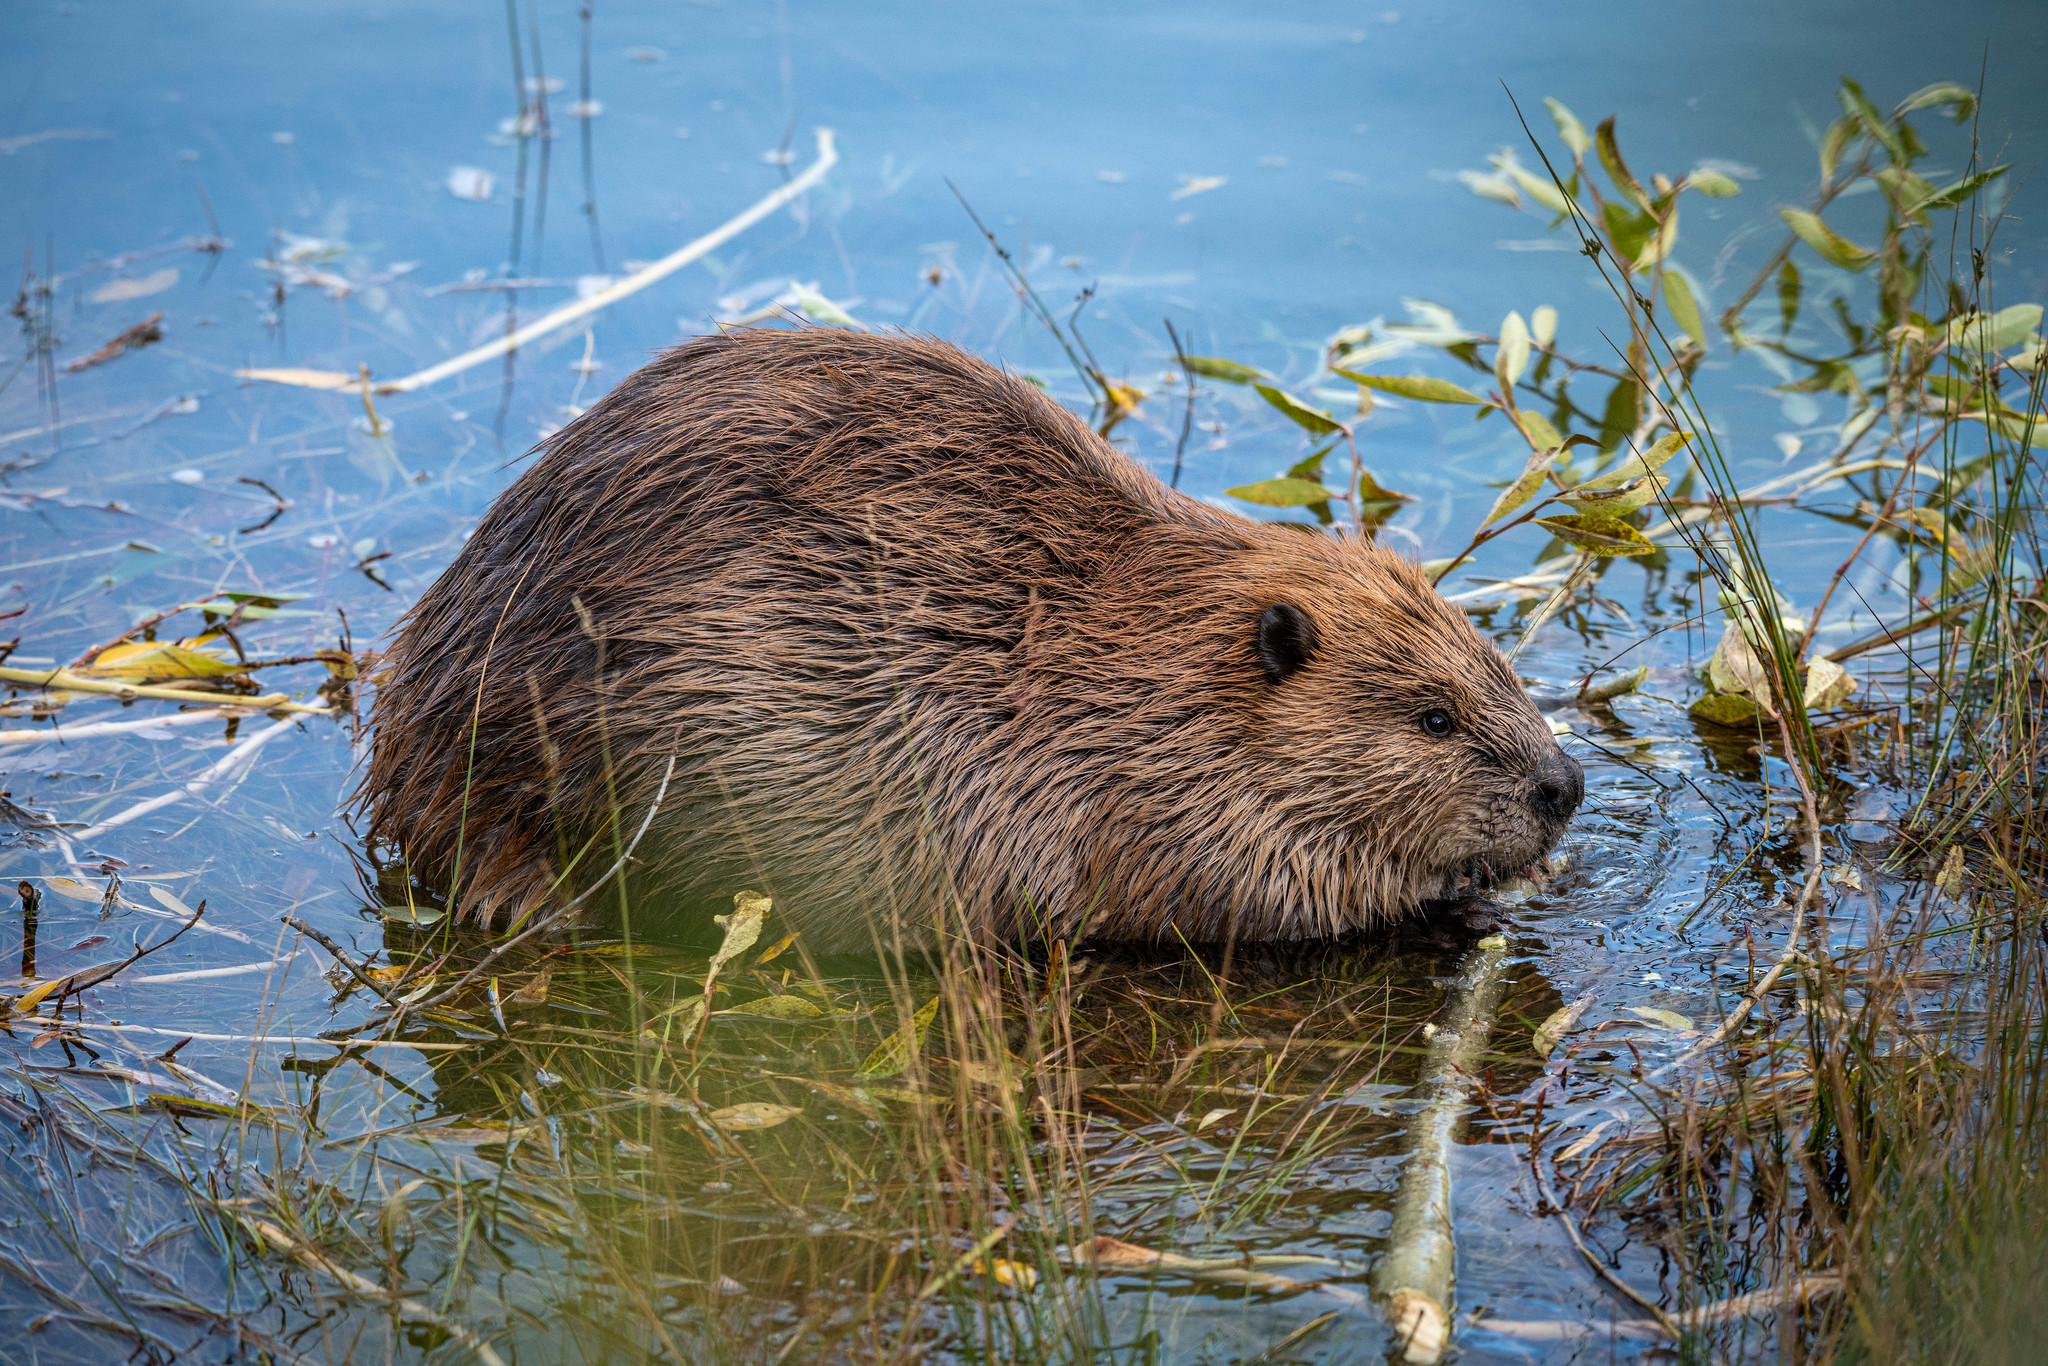 Free download high resolution image - free image free photo free stock image public domain picture -Beaver